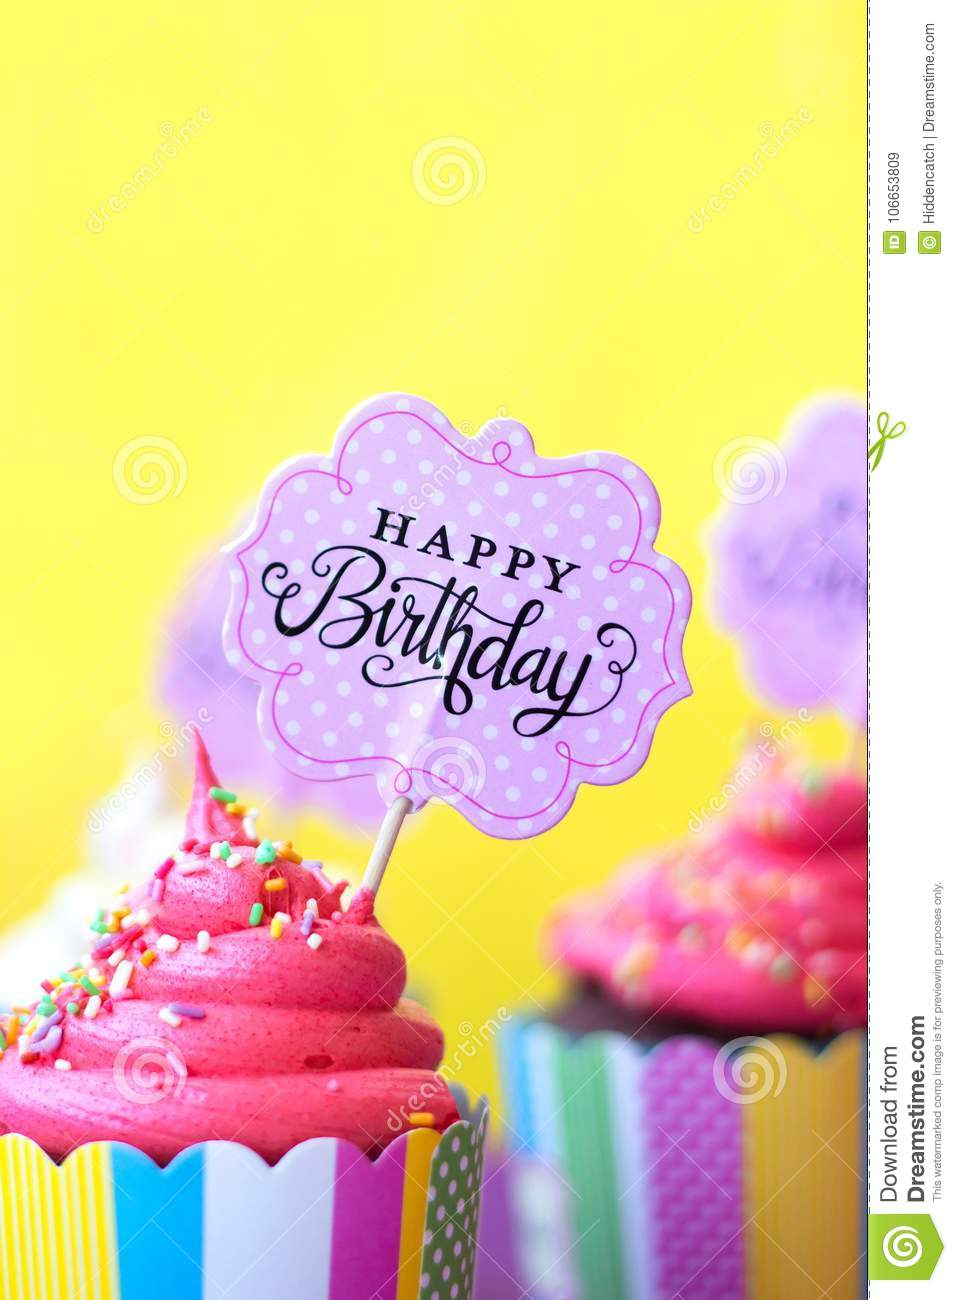 Tasty Strawberry Cupcakes With Happy Birthday Greeting Card On Y